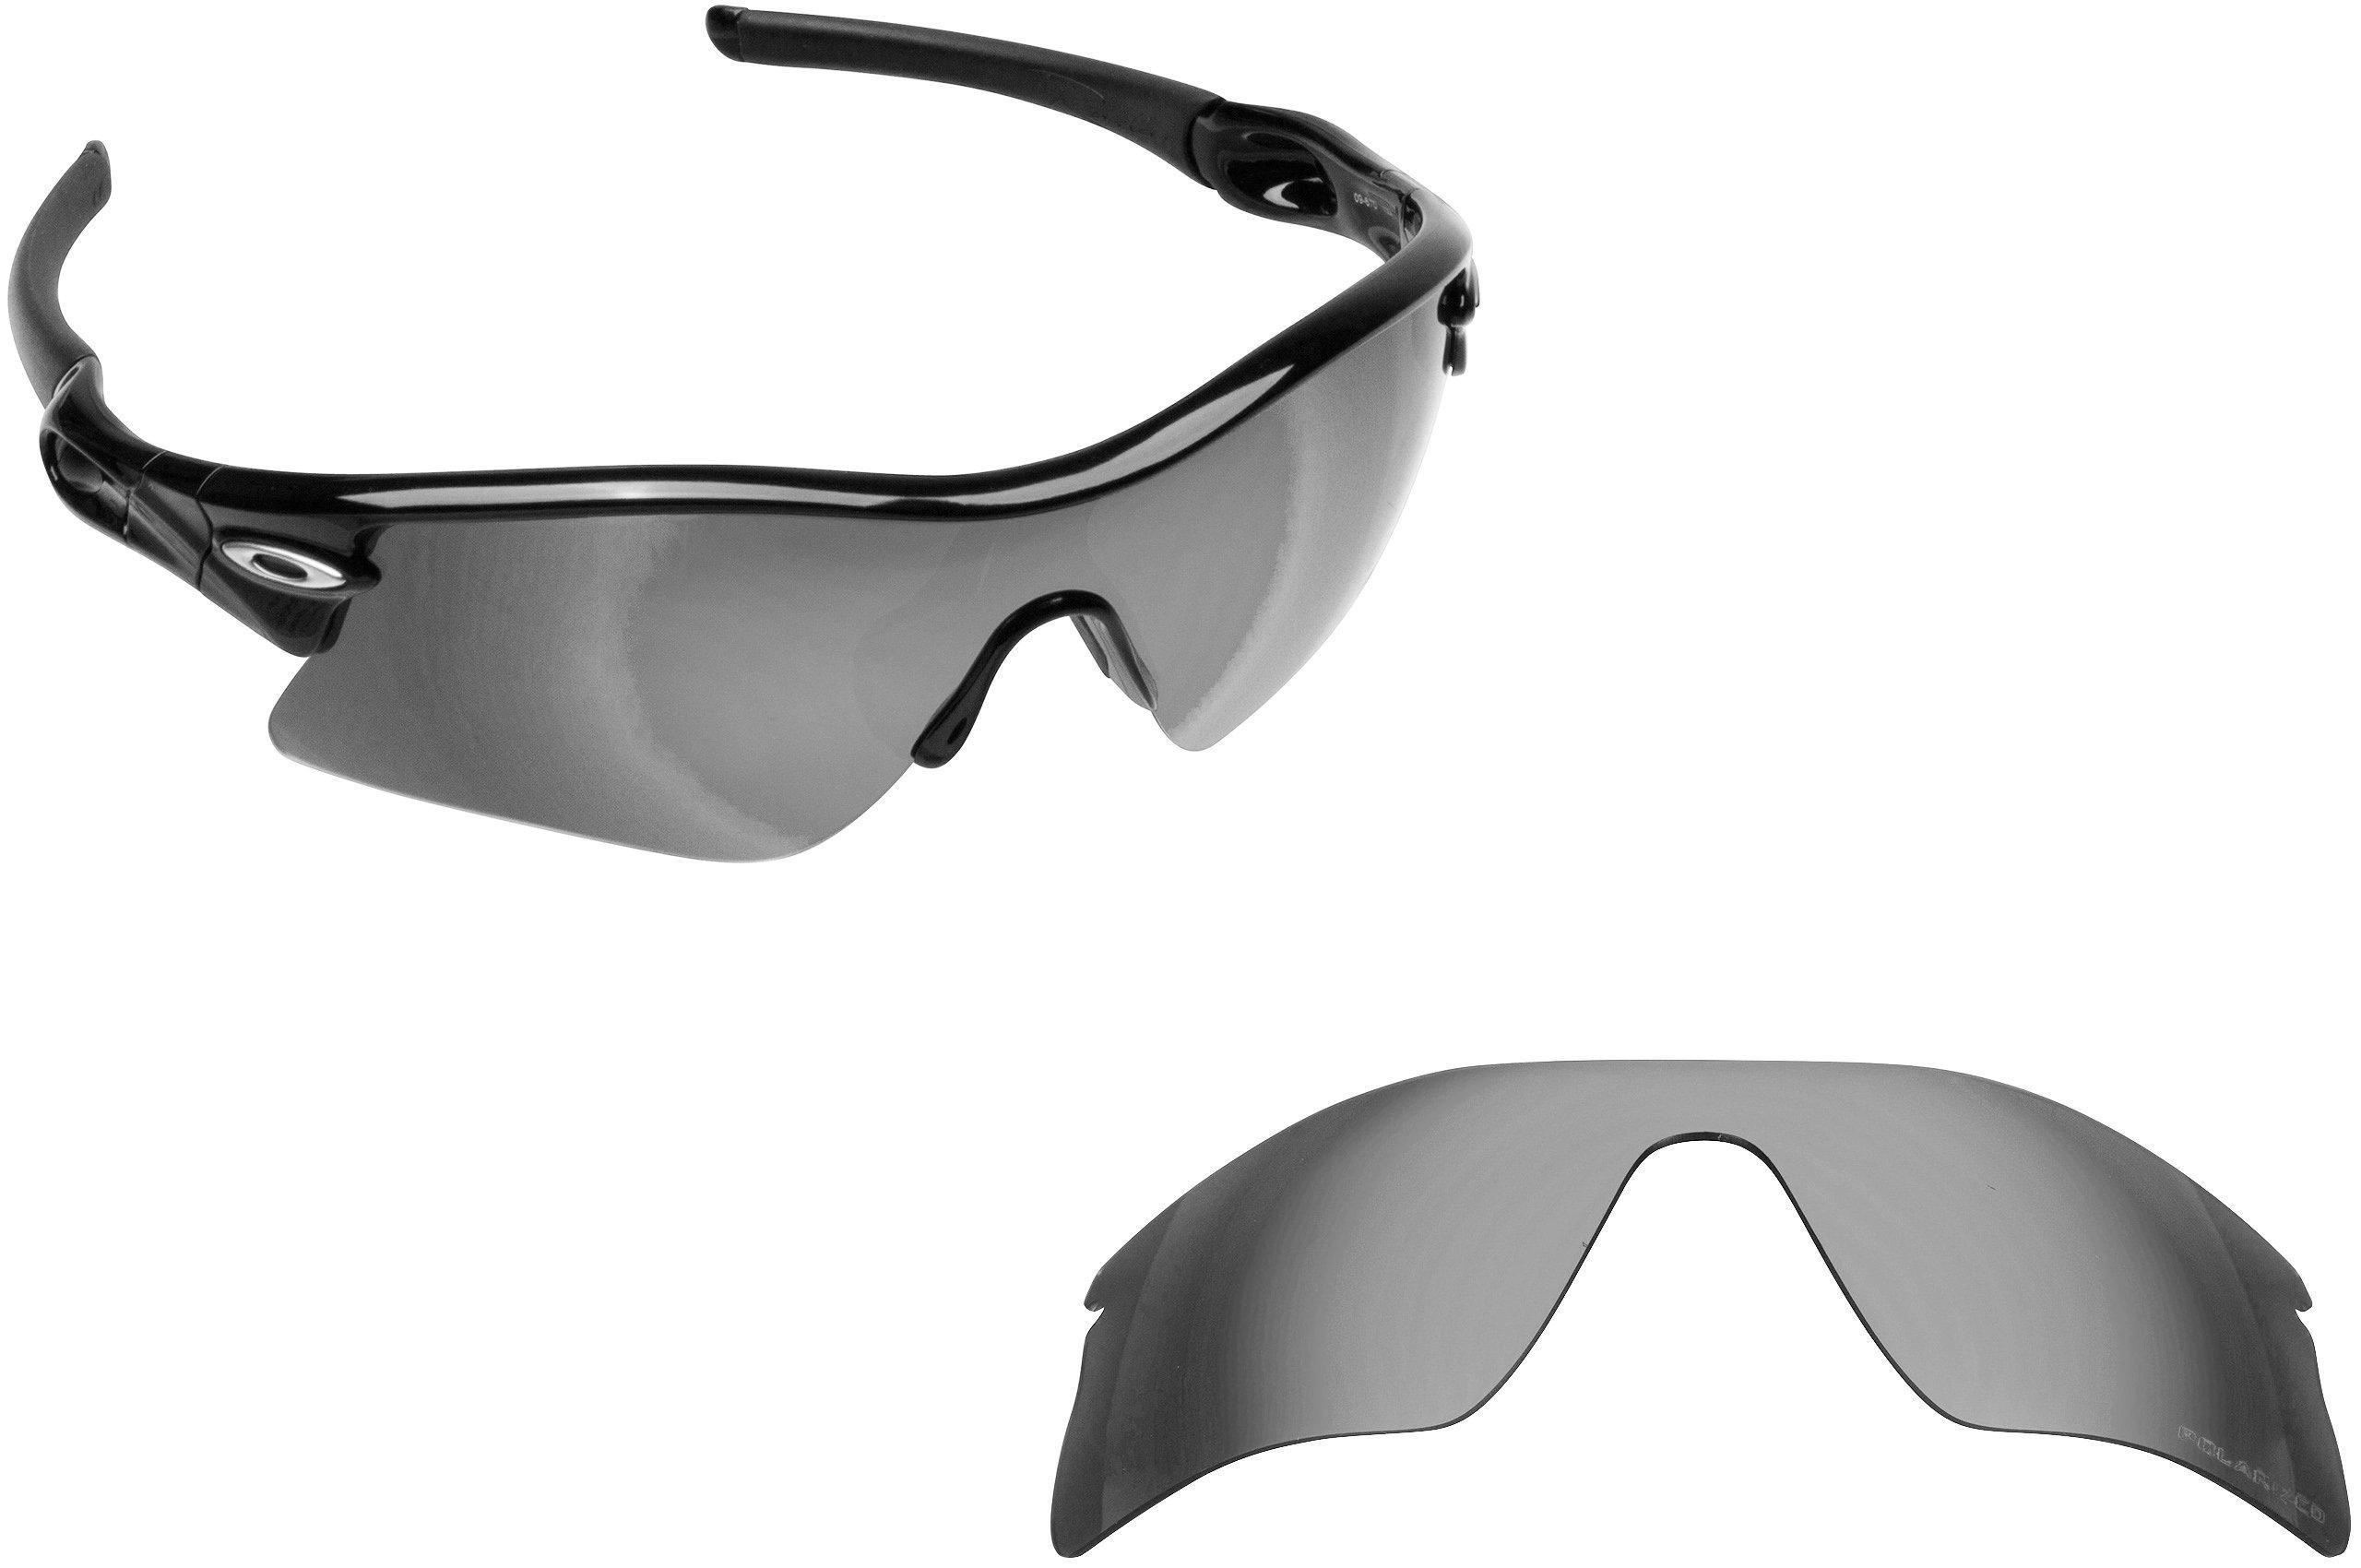 oakley e wire replacement lenses ifix  New SEEK OPTICS Replacement Lenses Oakley RADAR RANGE